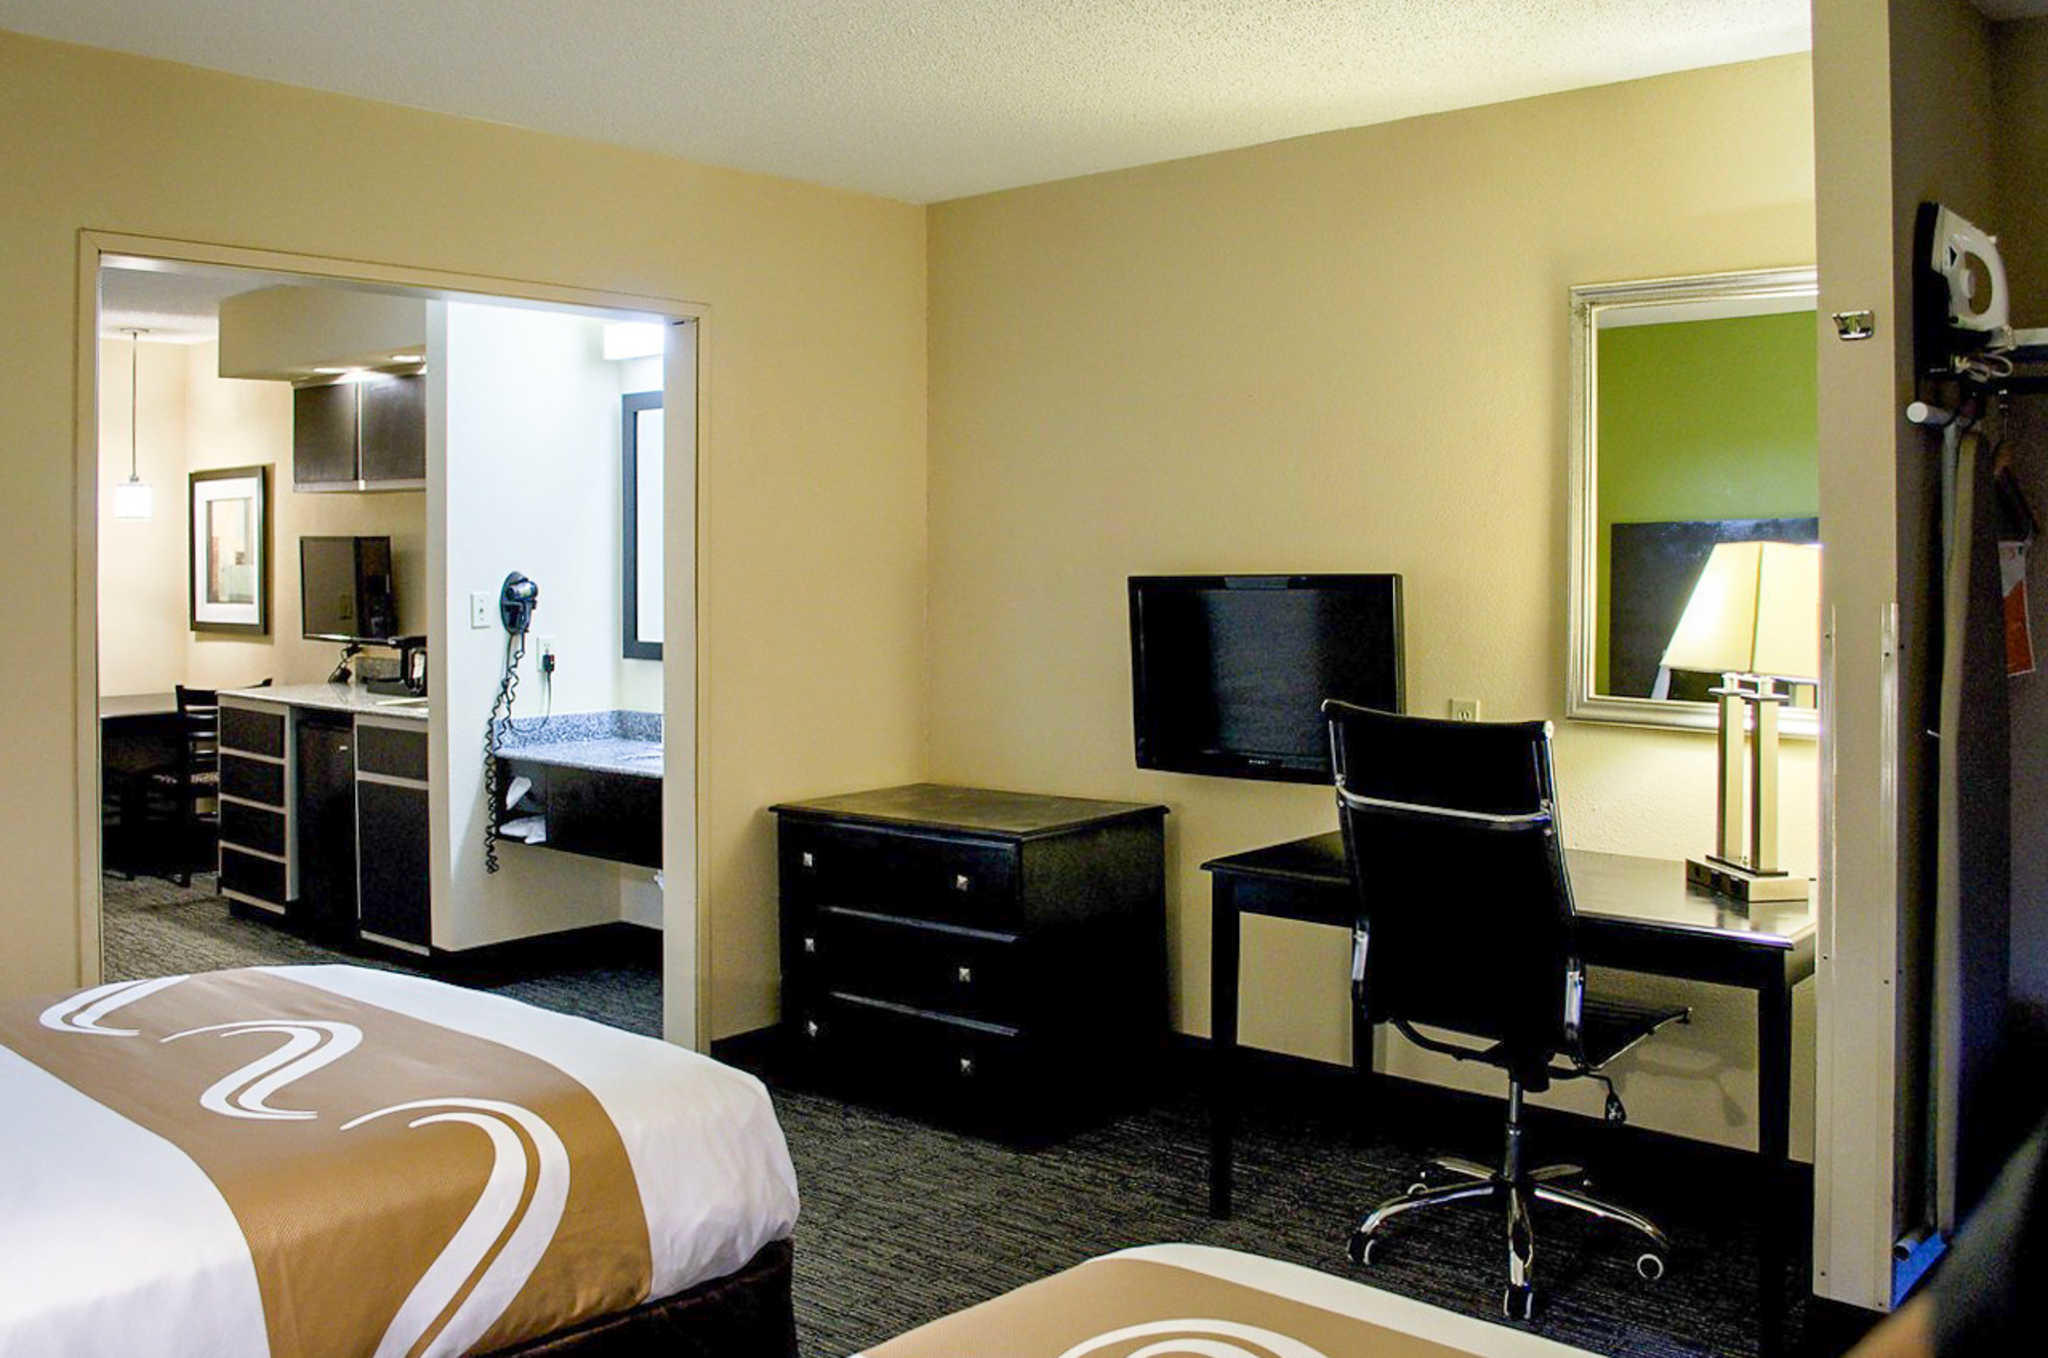 Quality Inn & Suites at Airport Blvd I-65 image 18